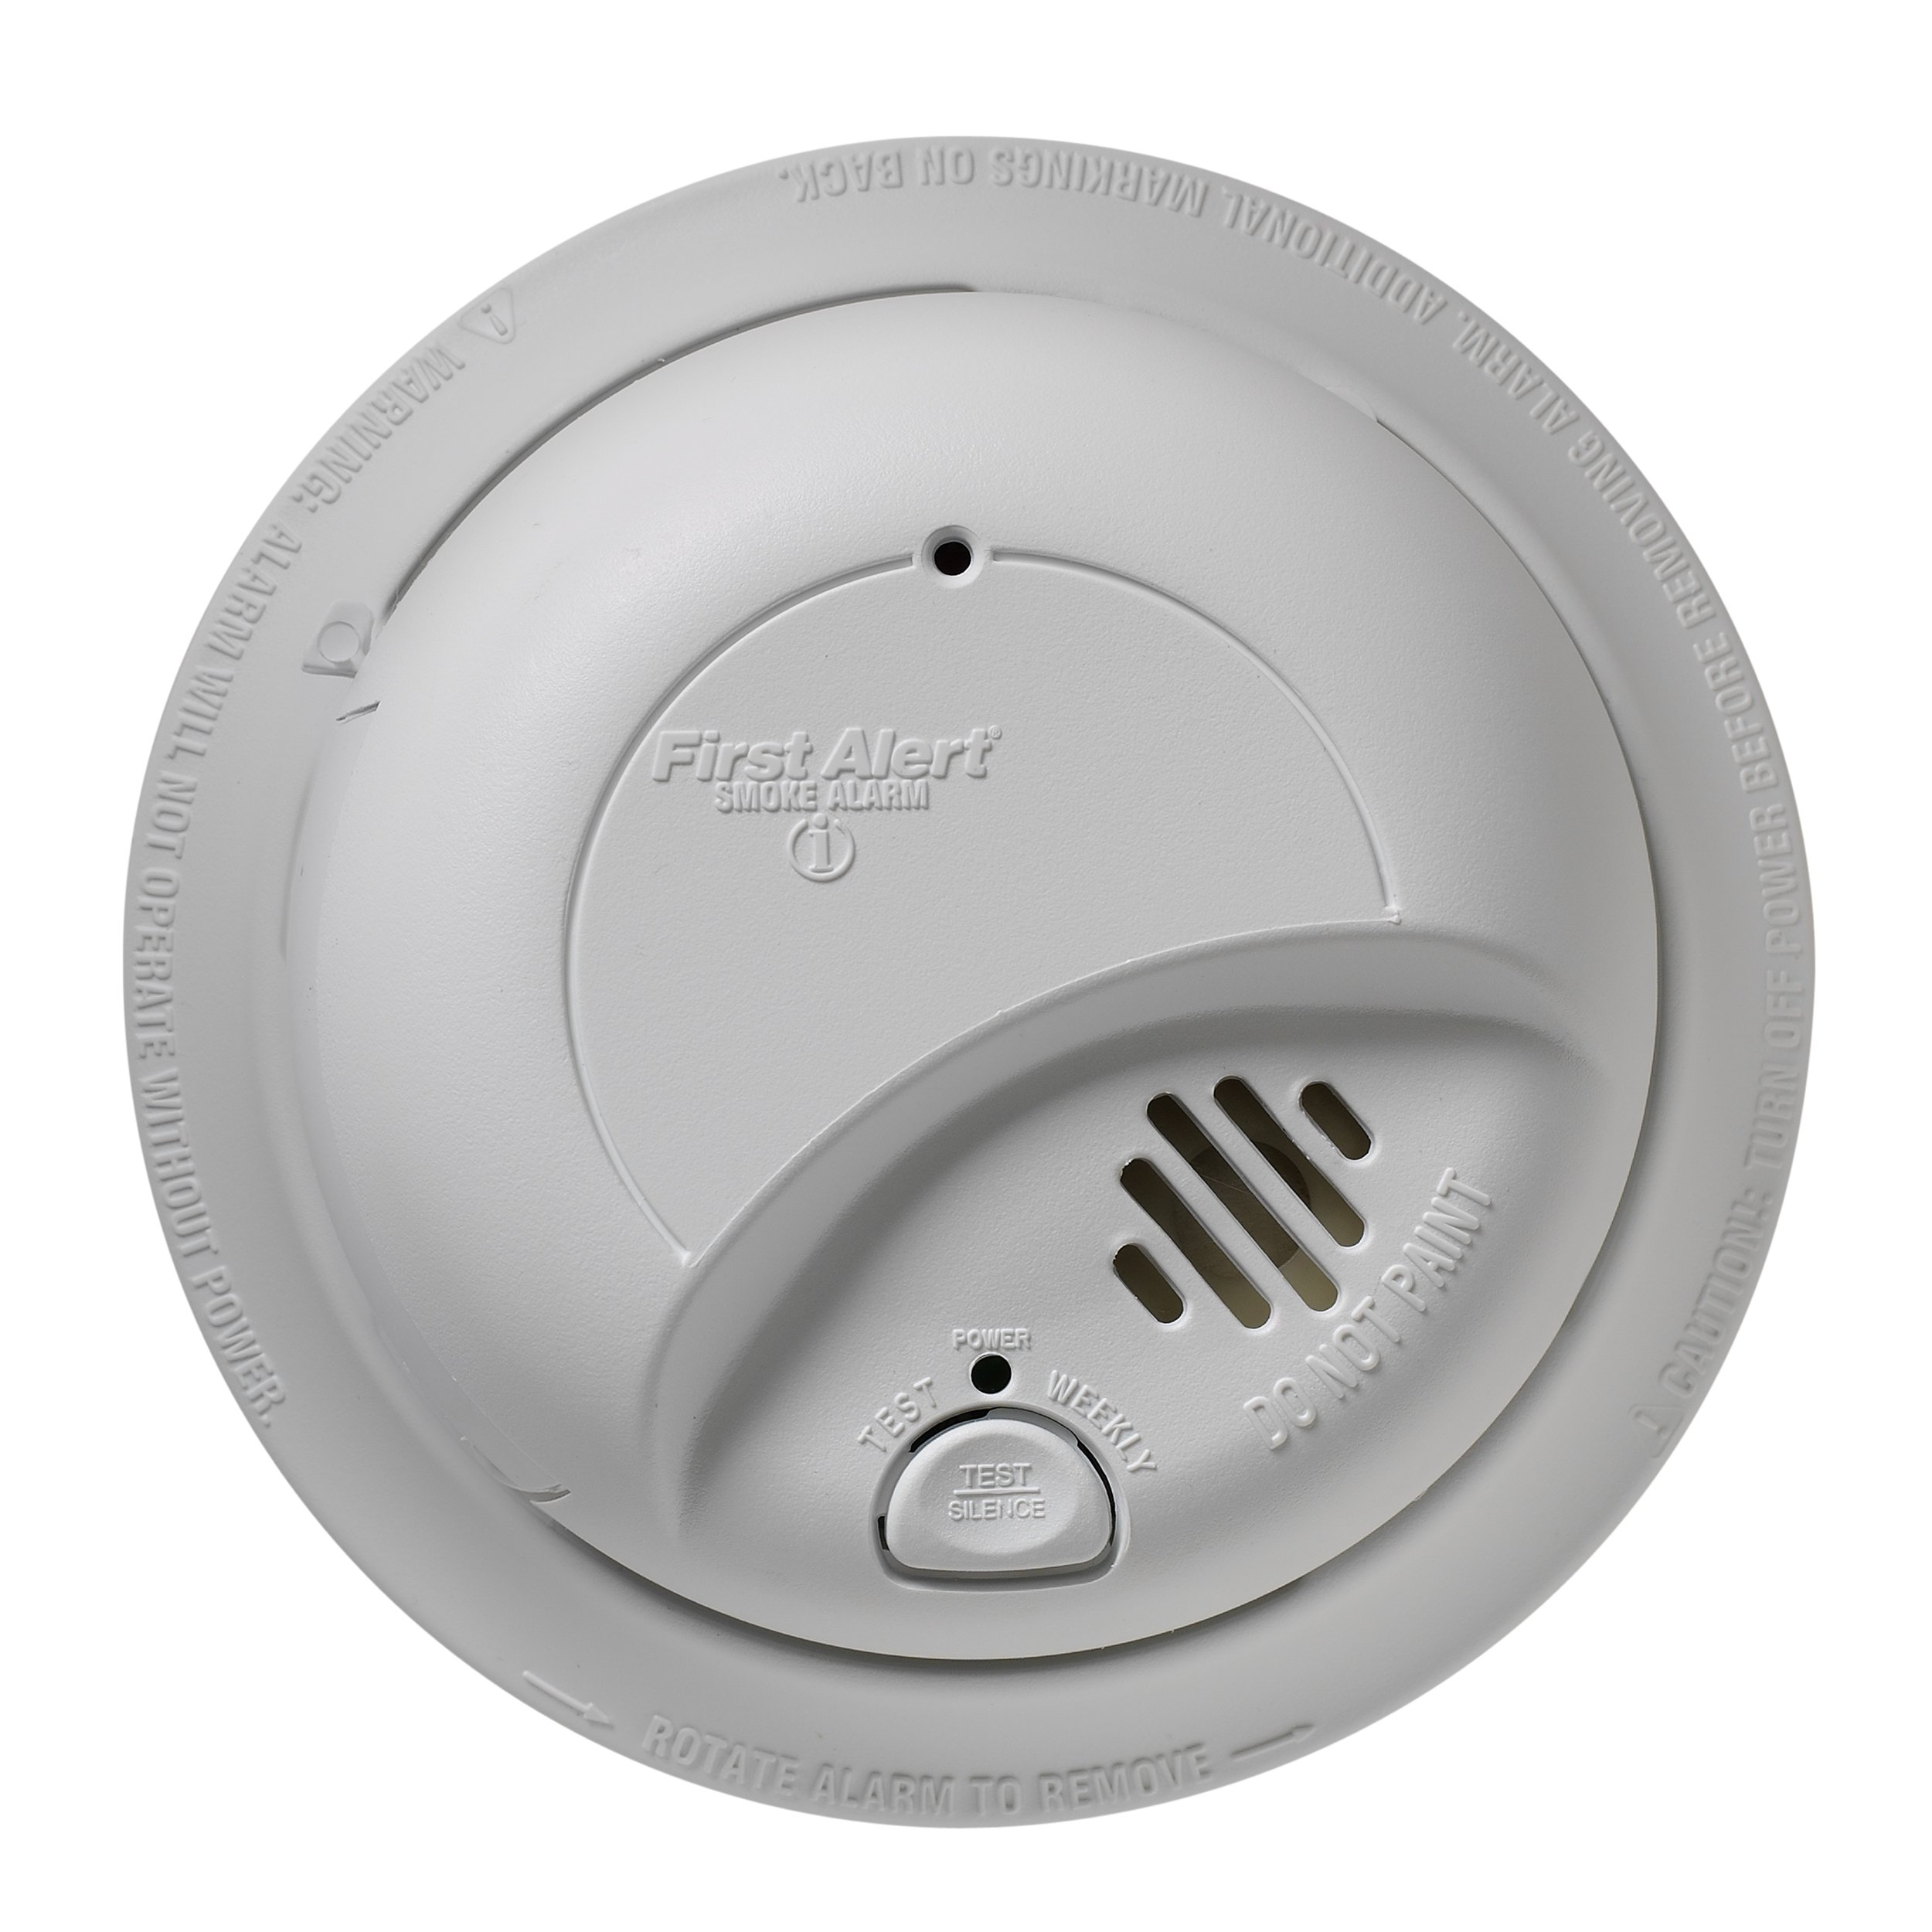 First Alert Smoke Detector Alarm | Hardwired with Backup Battery, 6-Pack, BRK9120b by First Alert